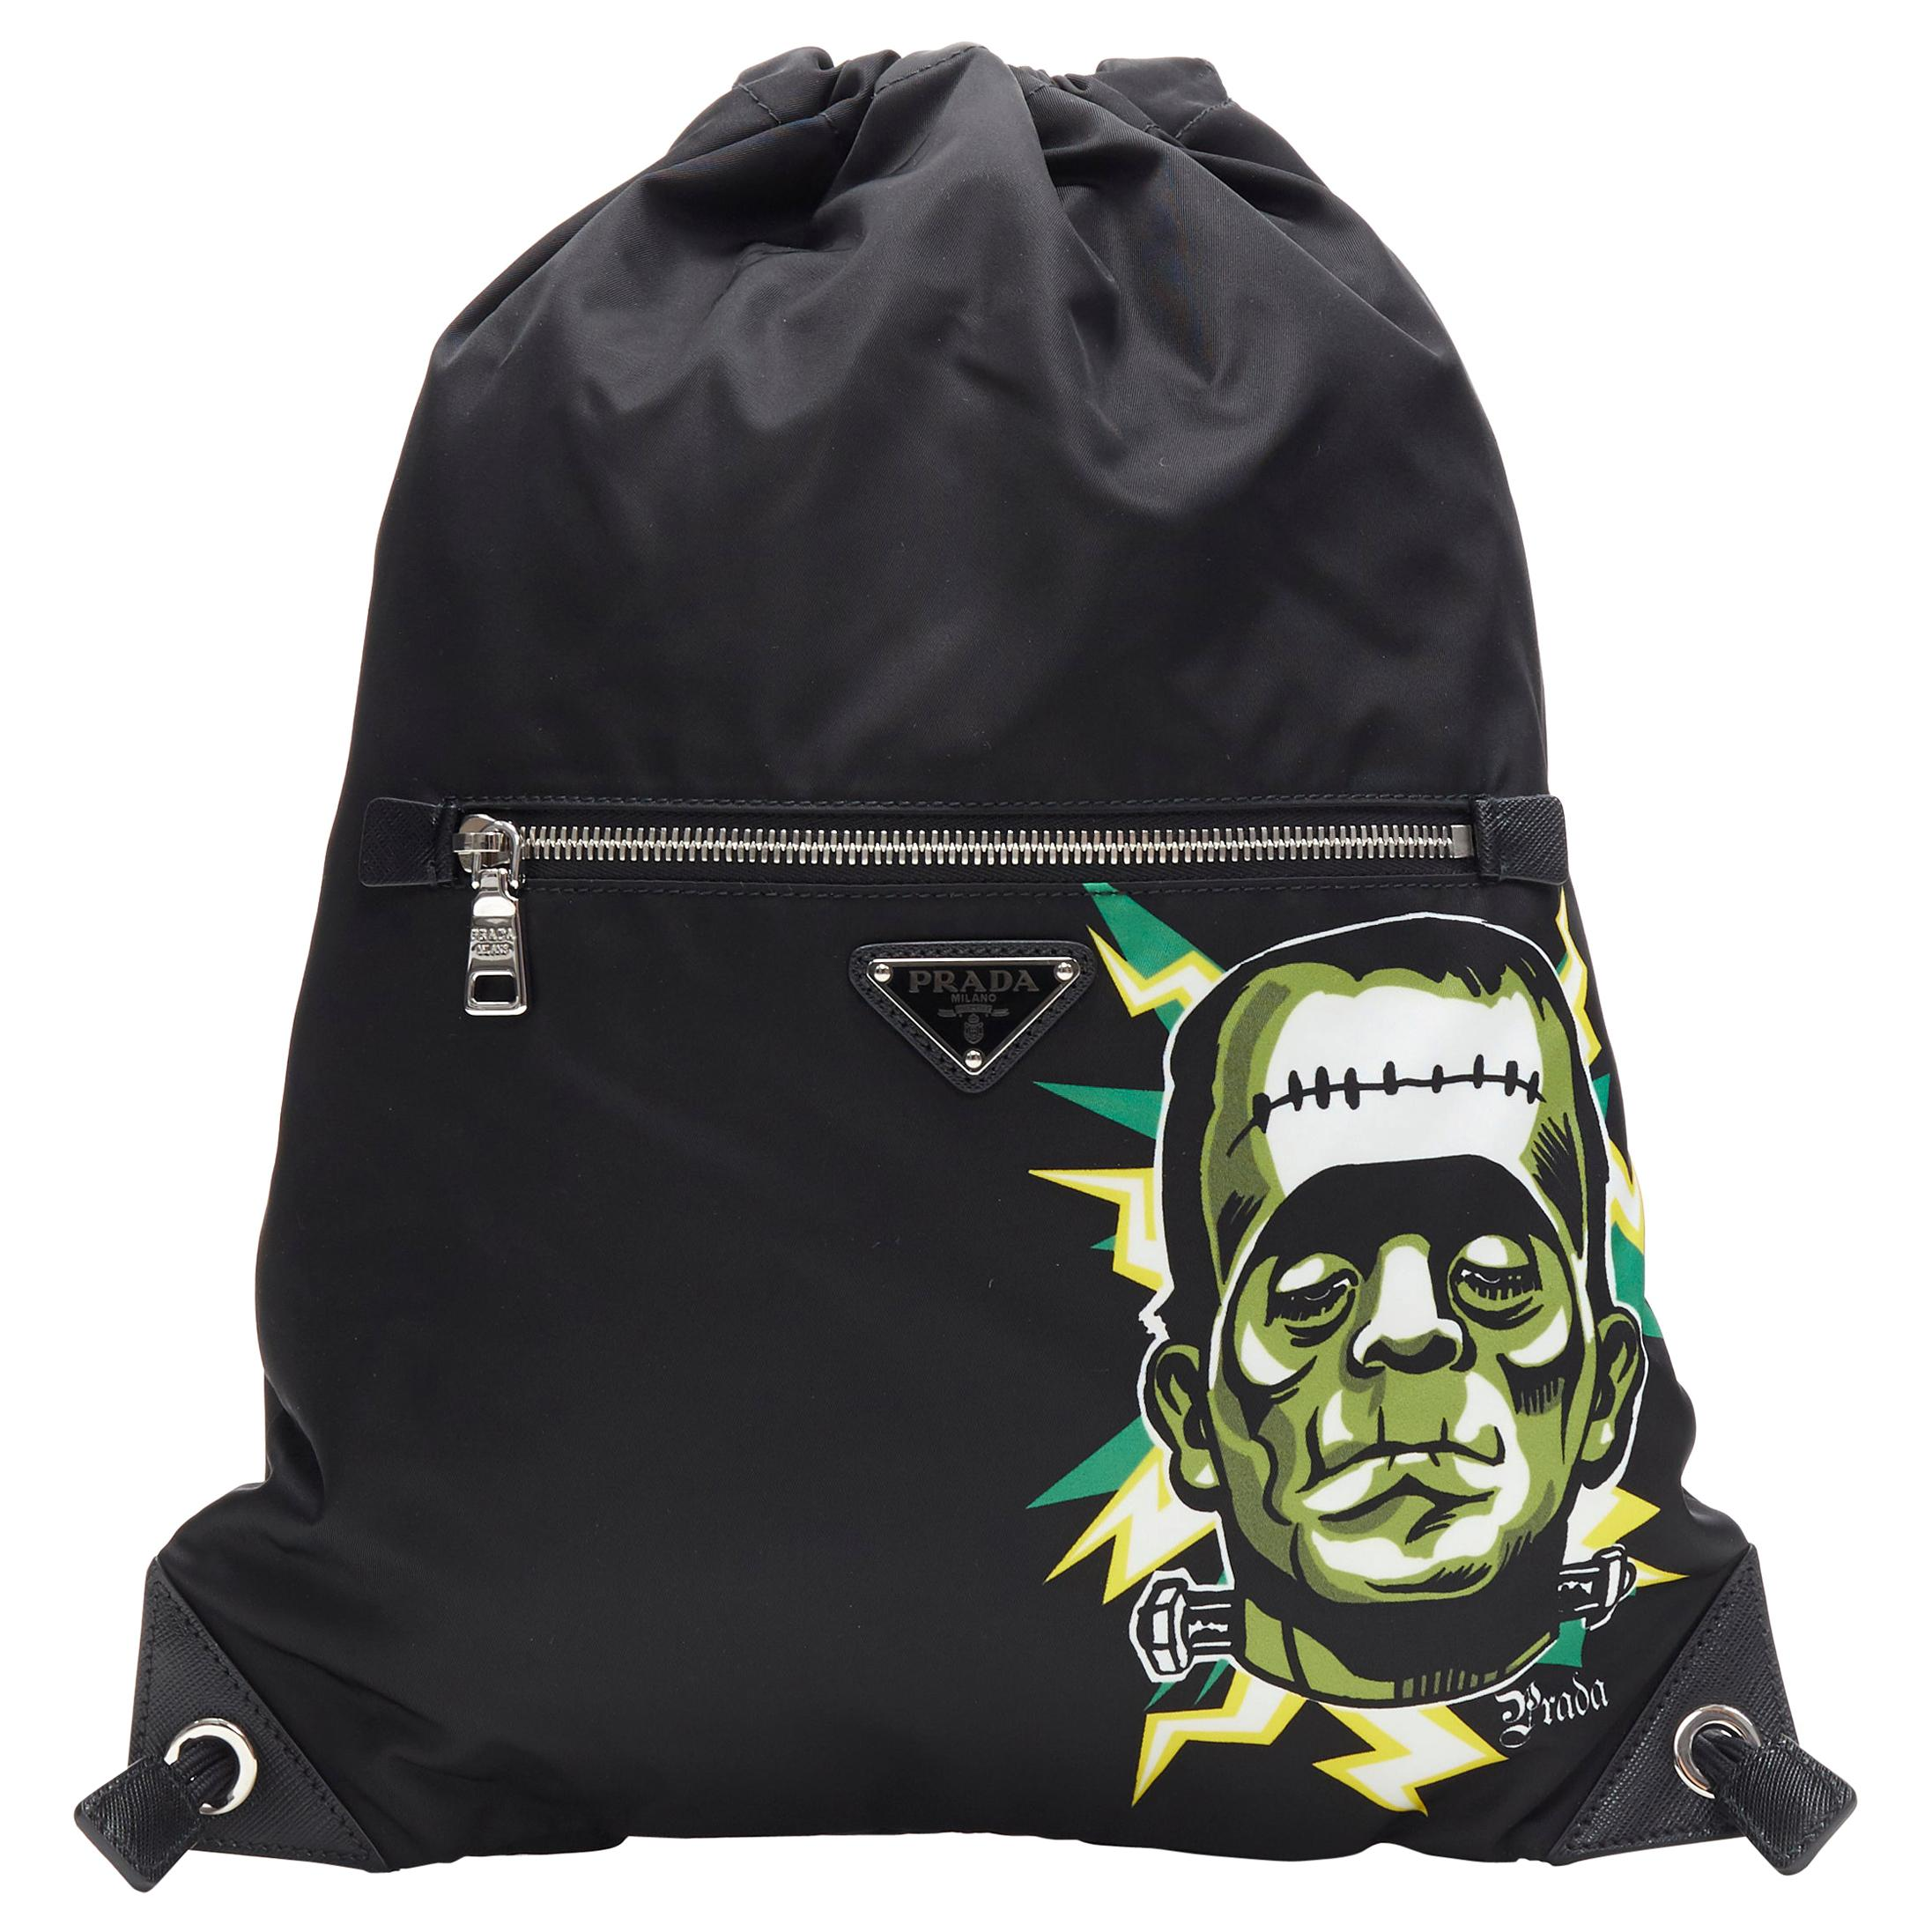 new PRADA 2019 Frankenstein black nylon logo plate drawstring backpack bag